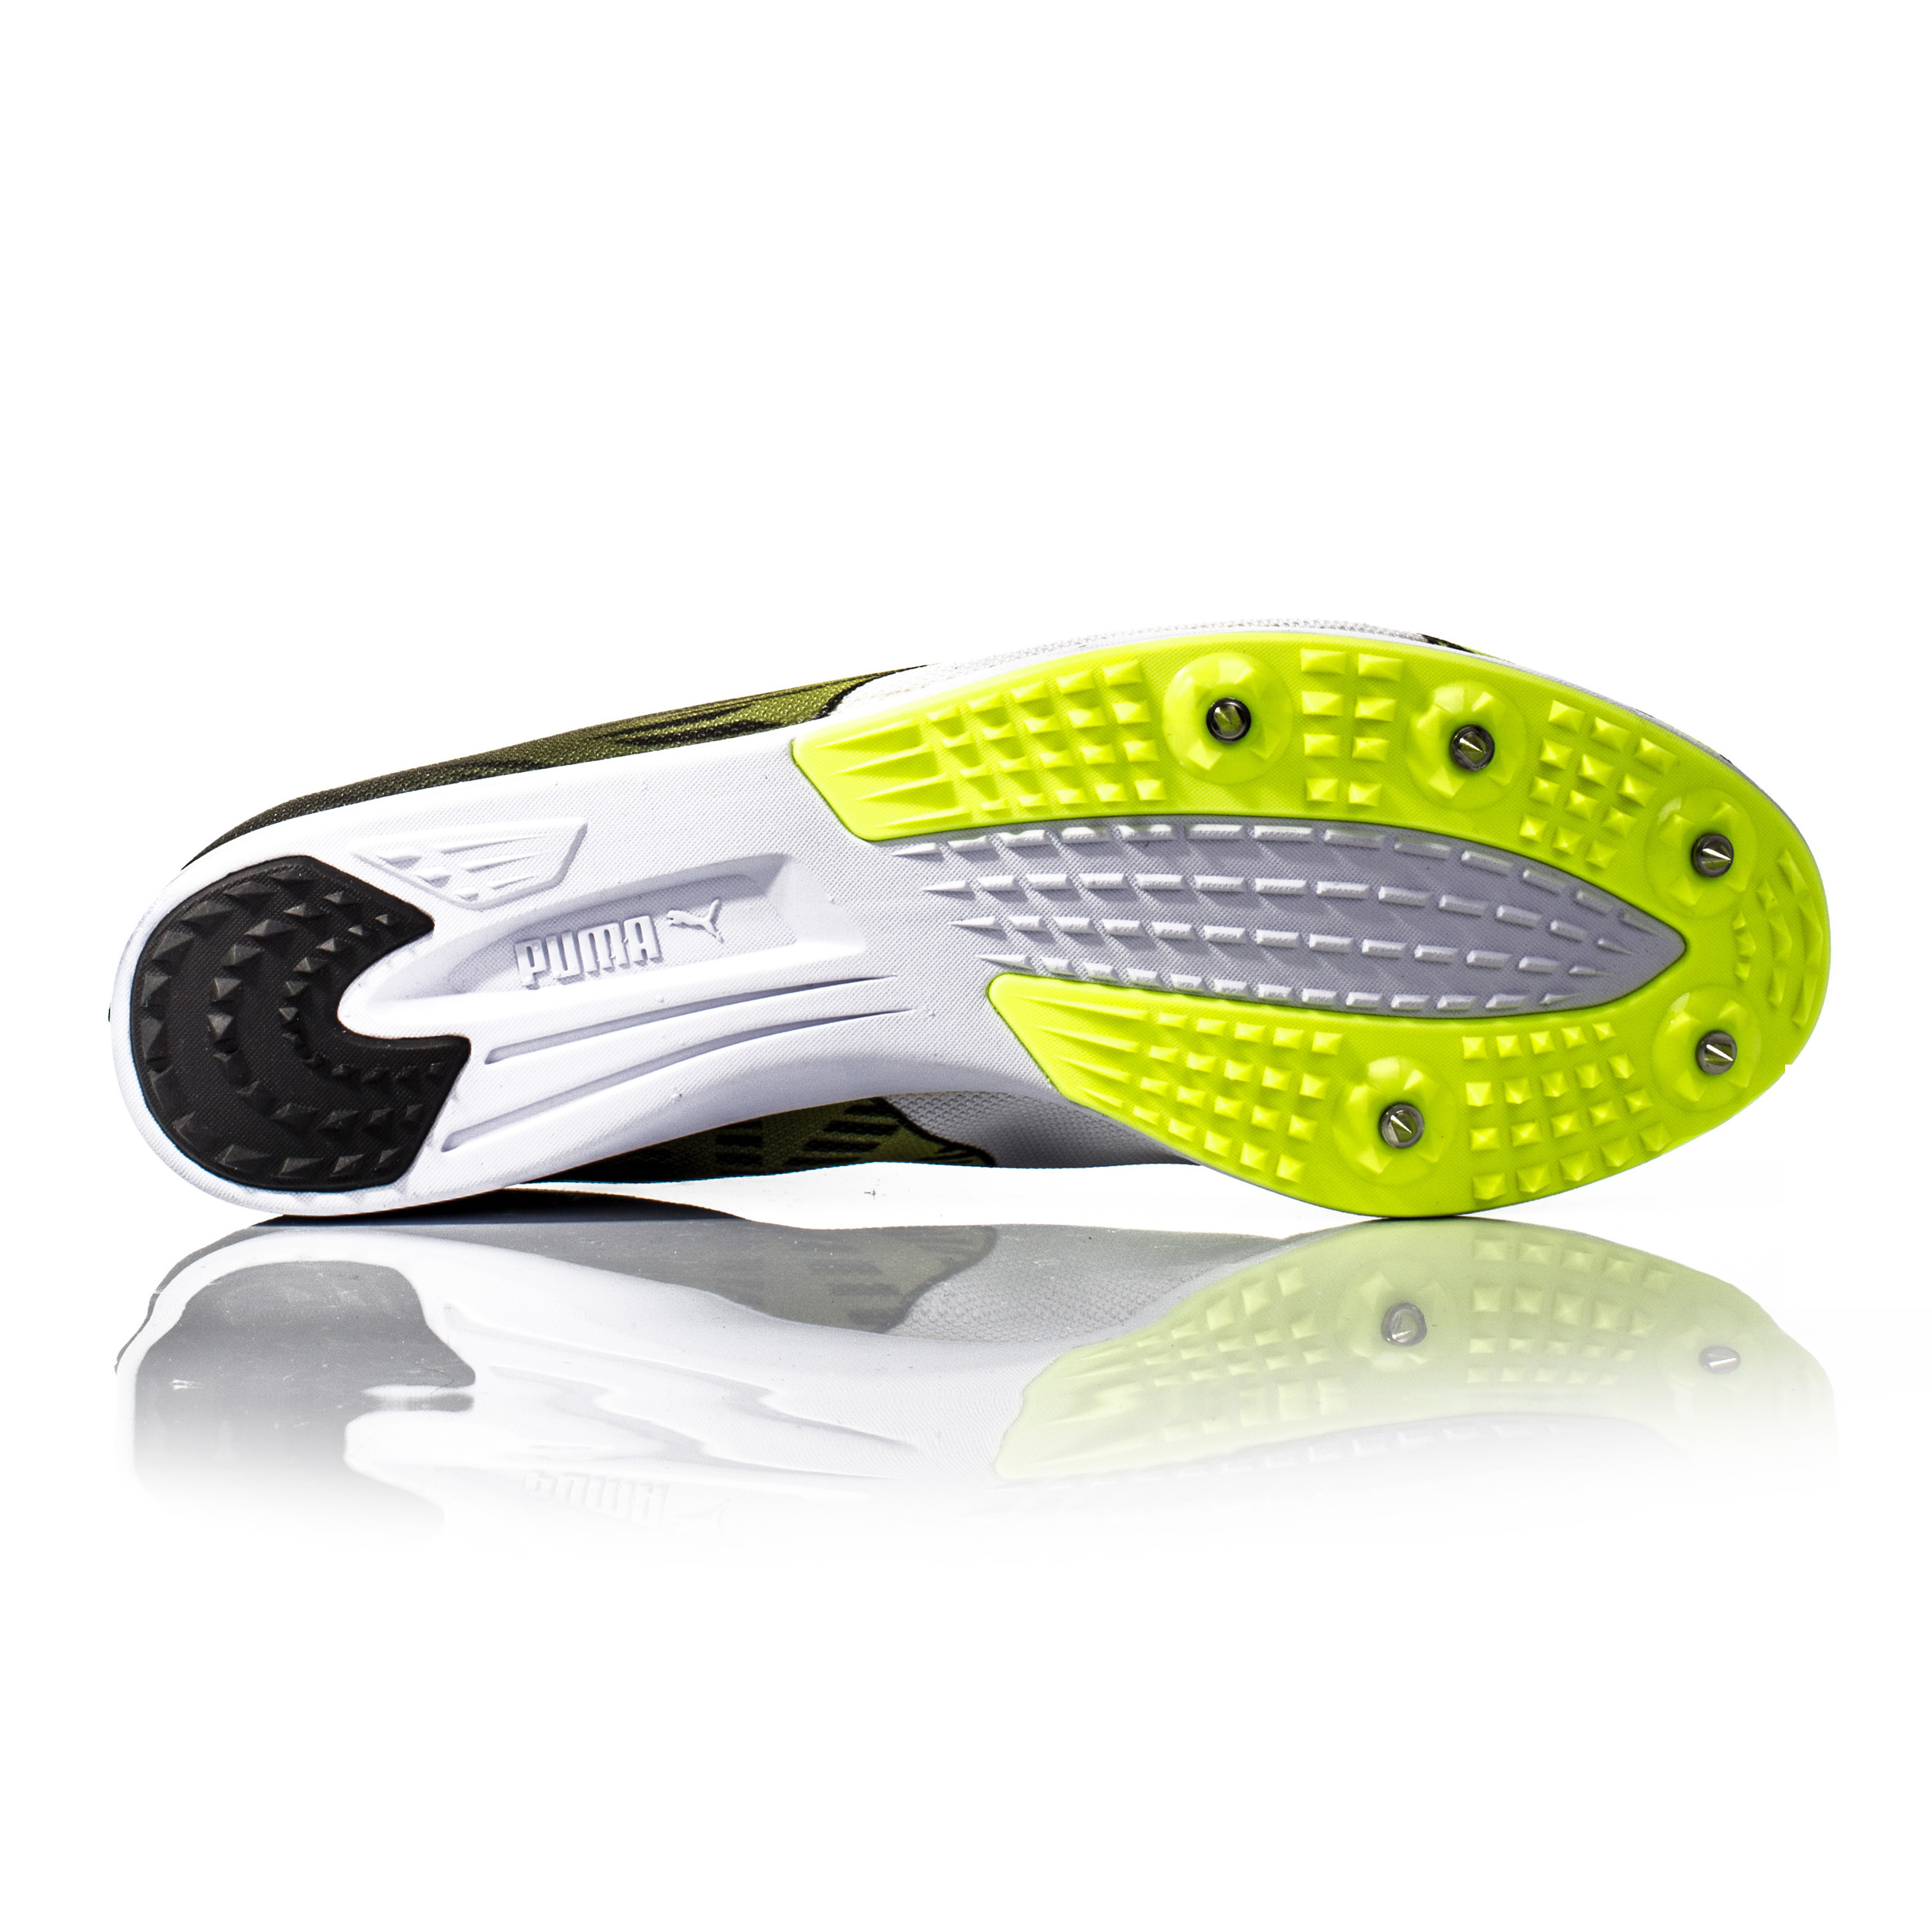 Mens Evospeed Distance 7 Track and Field Shoes Puma Shop Offer Sale Online rpu0bpU